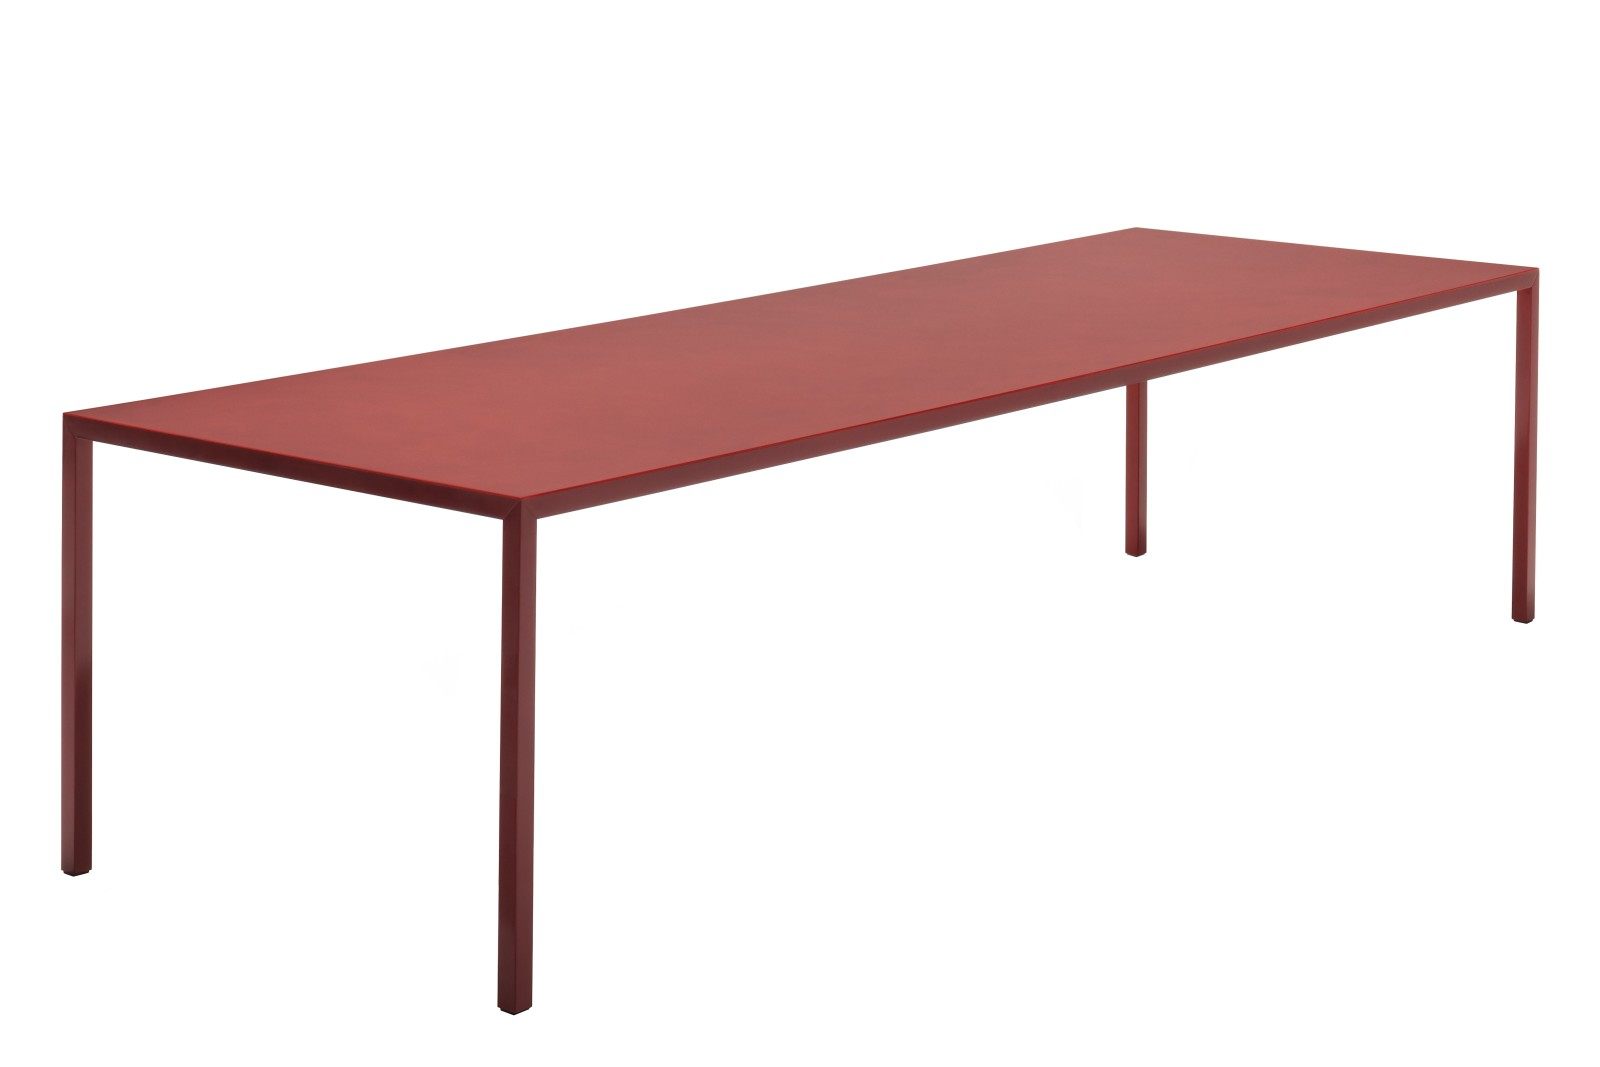 Tense Material H73 Dining Table Red Diamond, 80x180cm